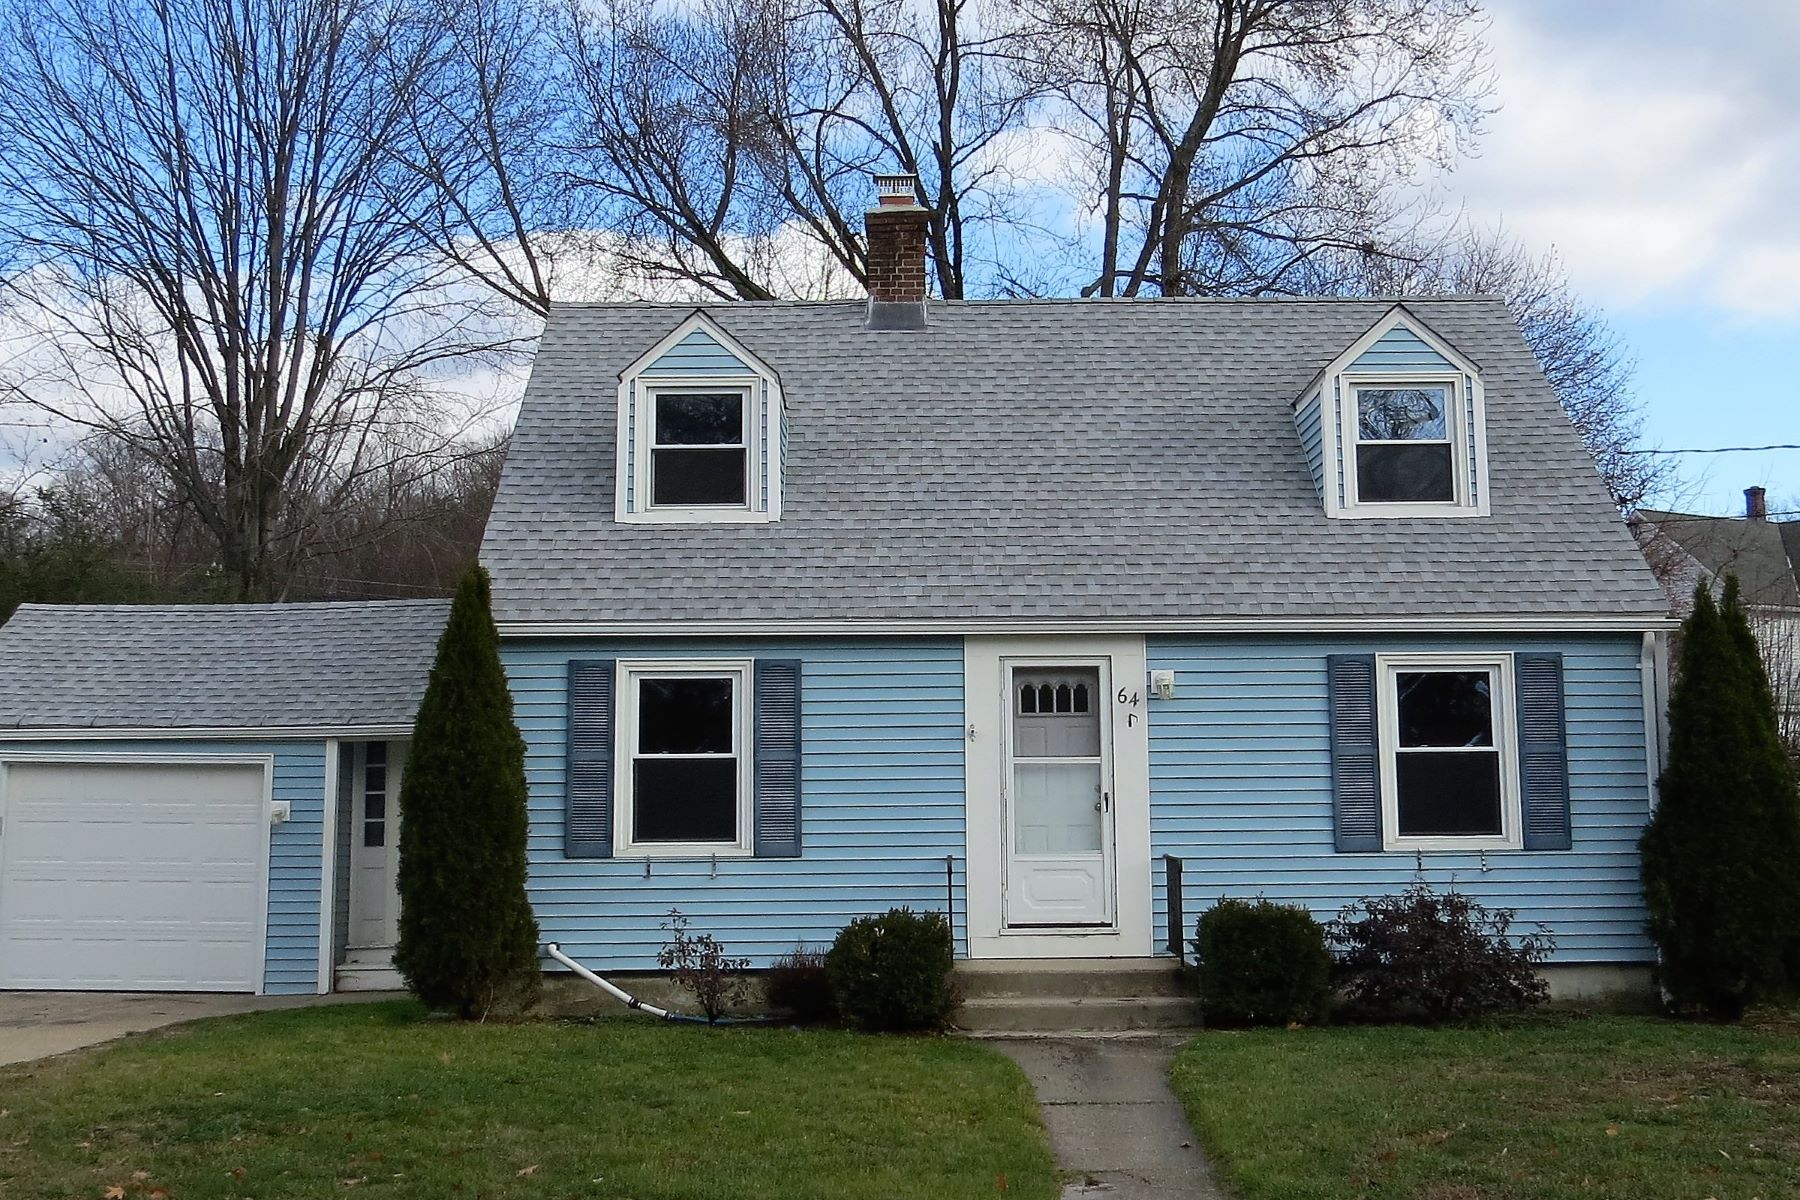 Single Family Home for Sale at Adorable Cape 64 Elsie St Torrington, Connecticut 06790 United States